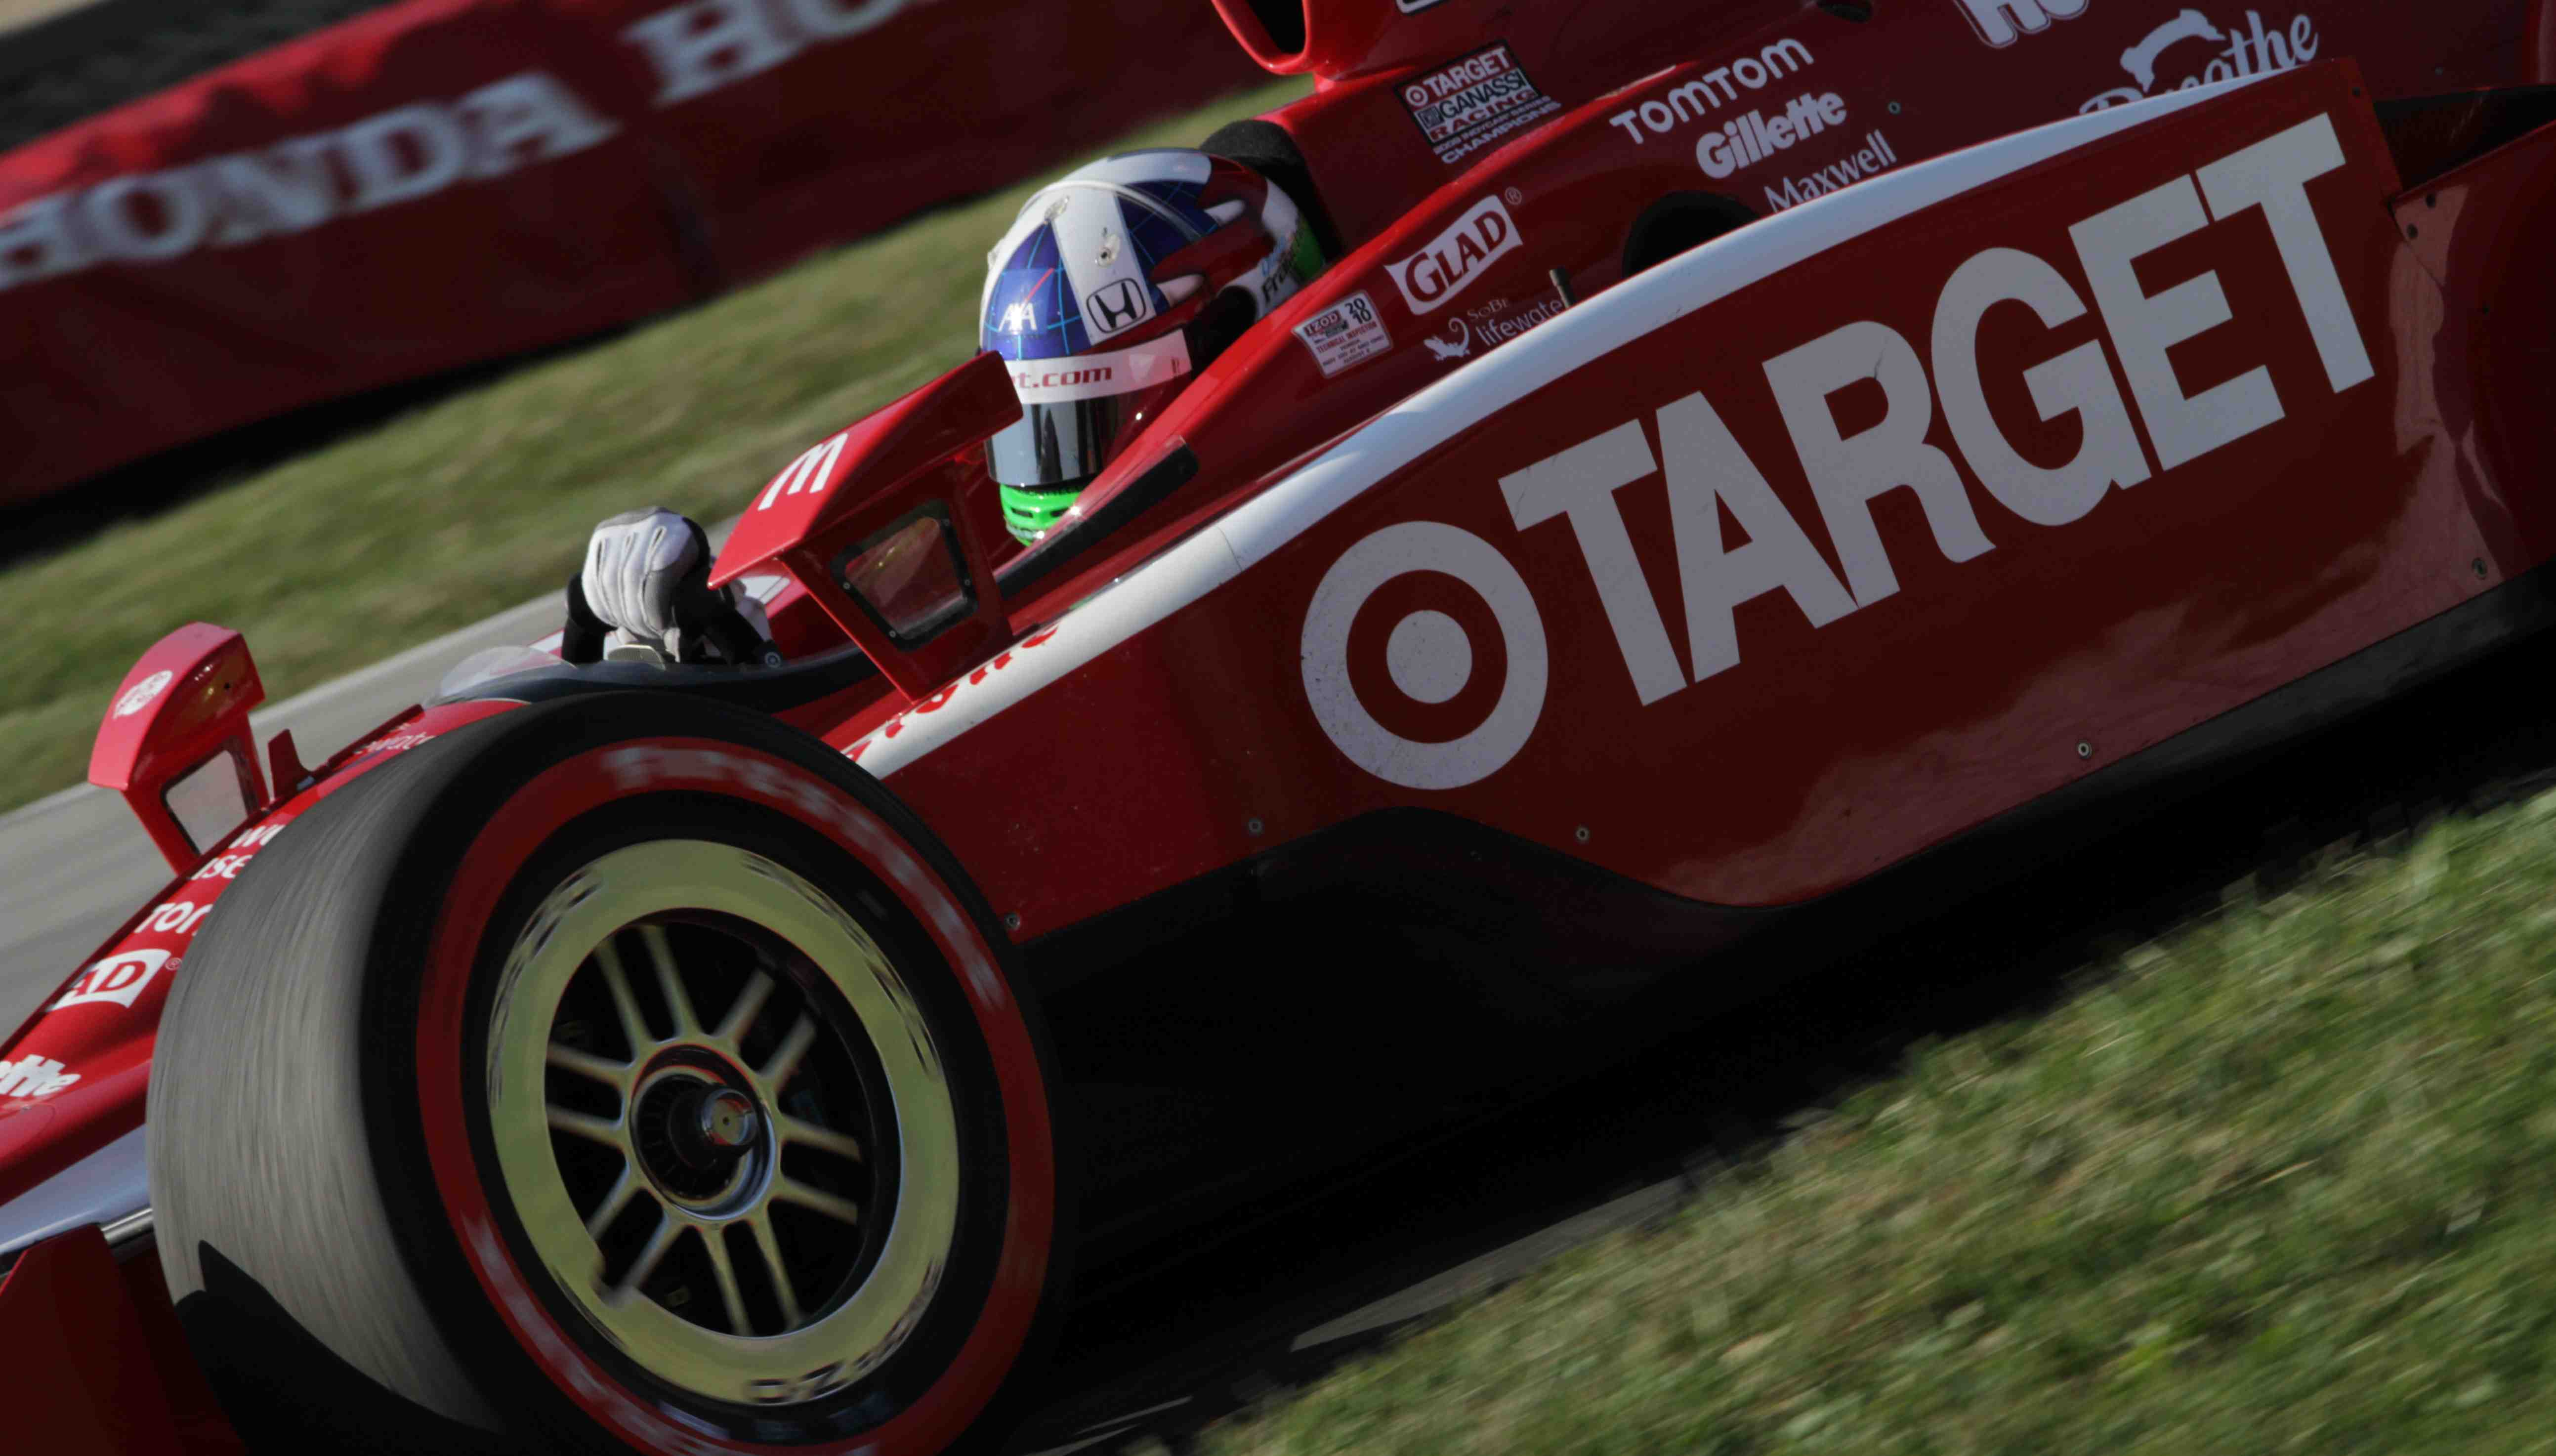 Franchitti closes in on Power's points lead